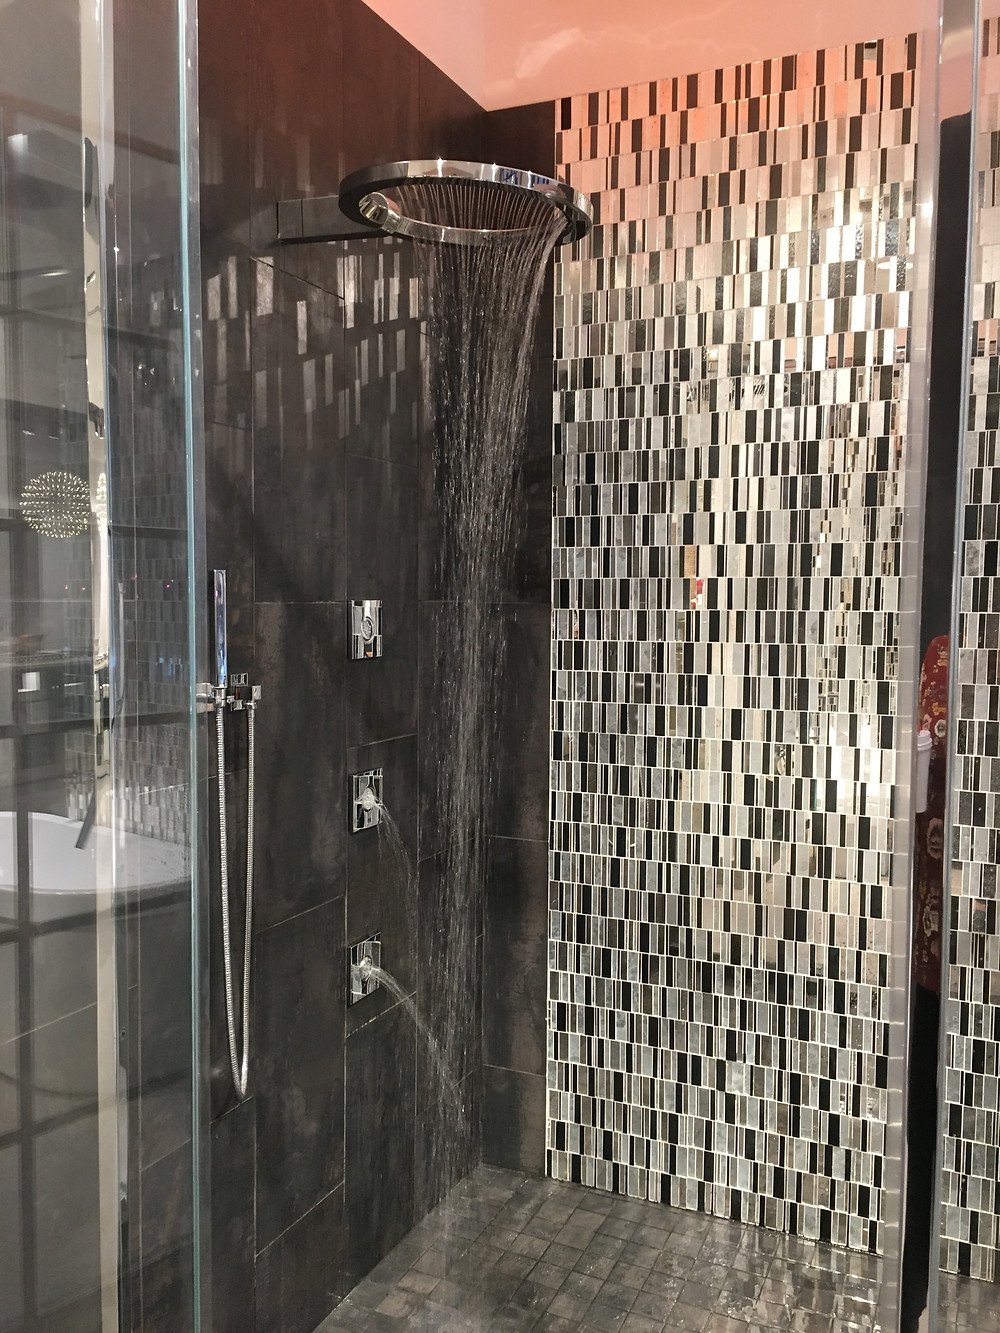 View of unique showerhead and body sprays at the Pirch showroom in NYC.